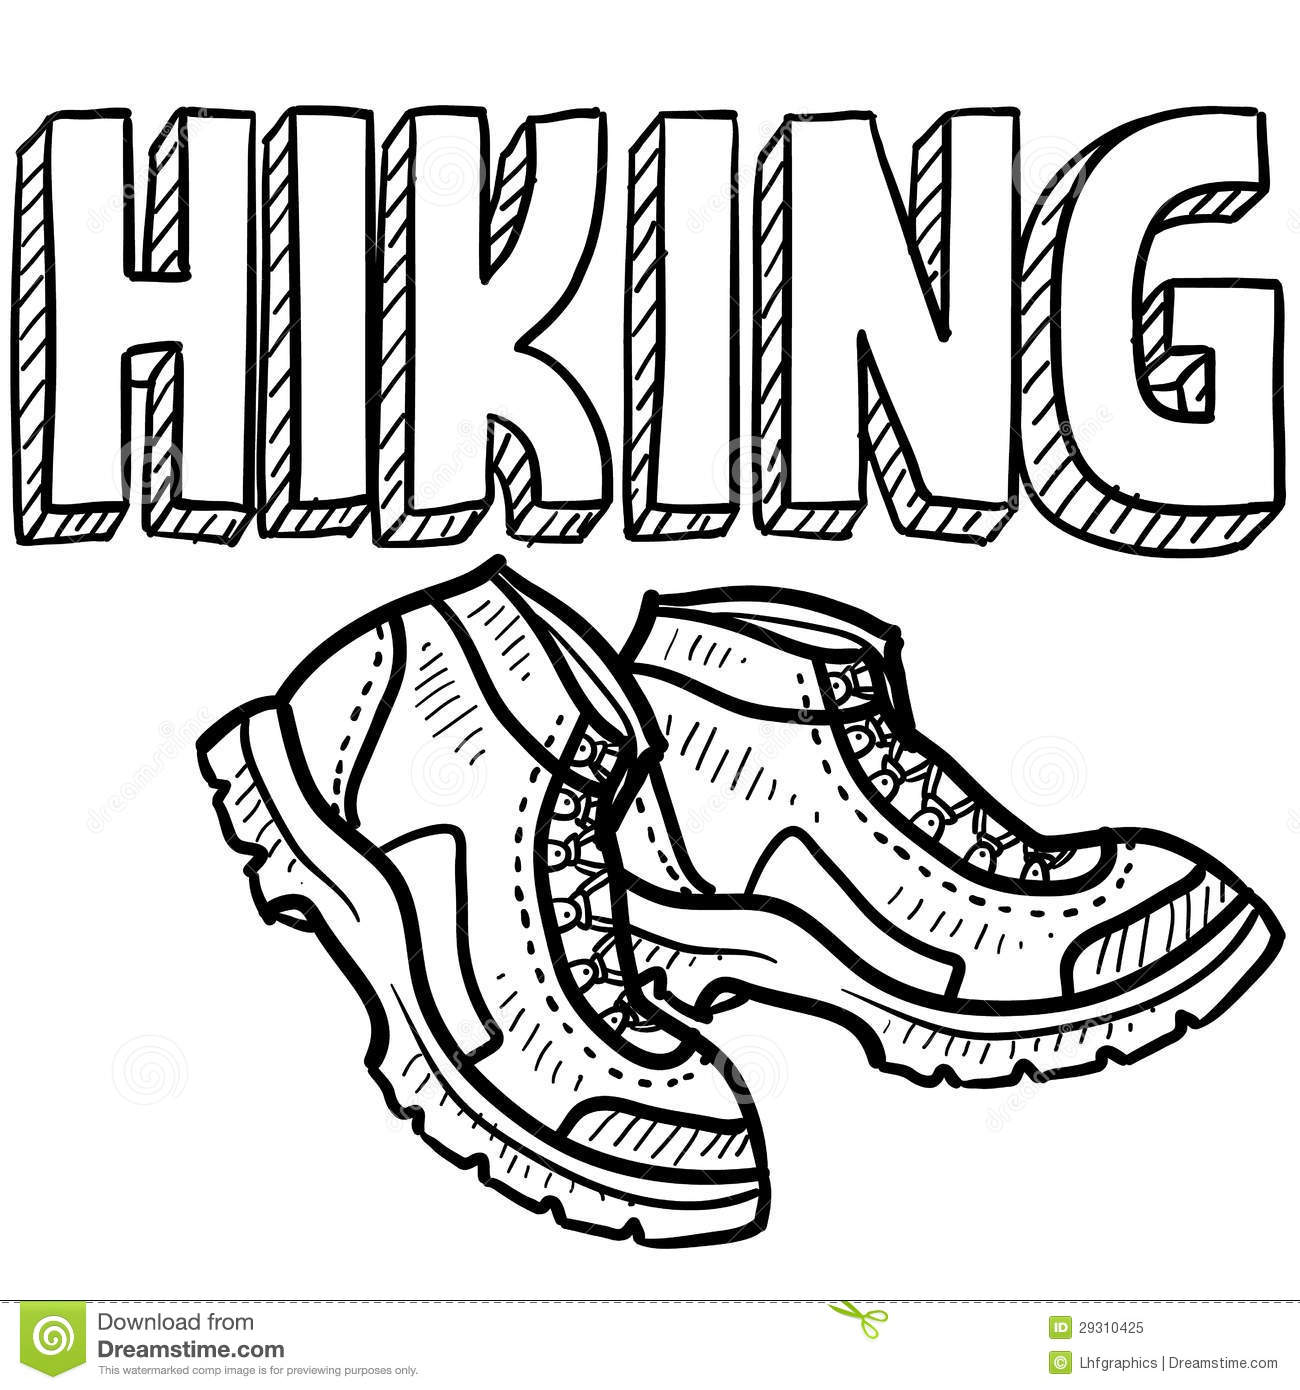 Hiking sports sketch stock vector. Illustration of